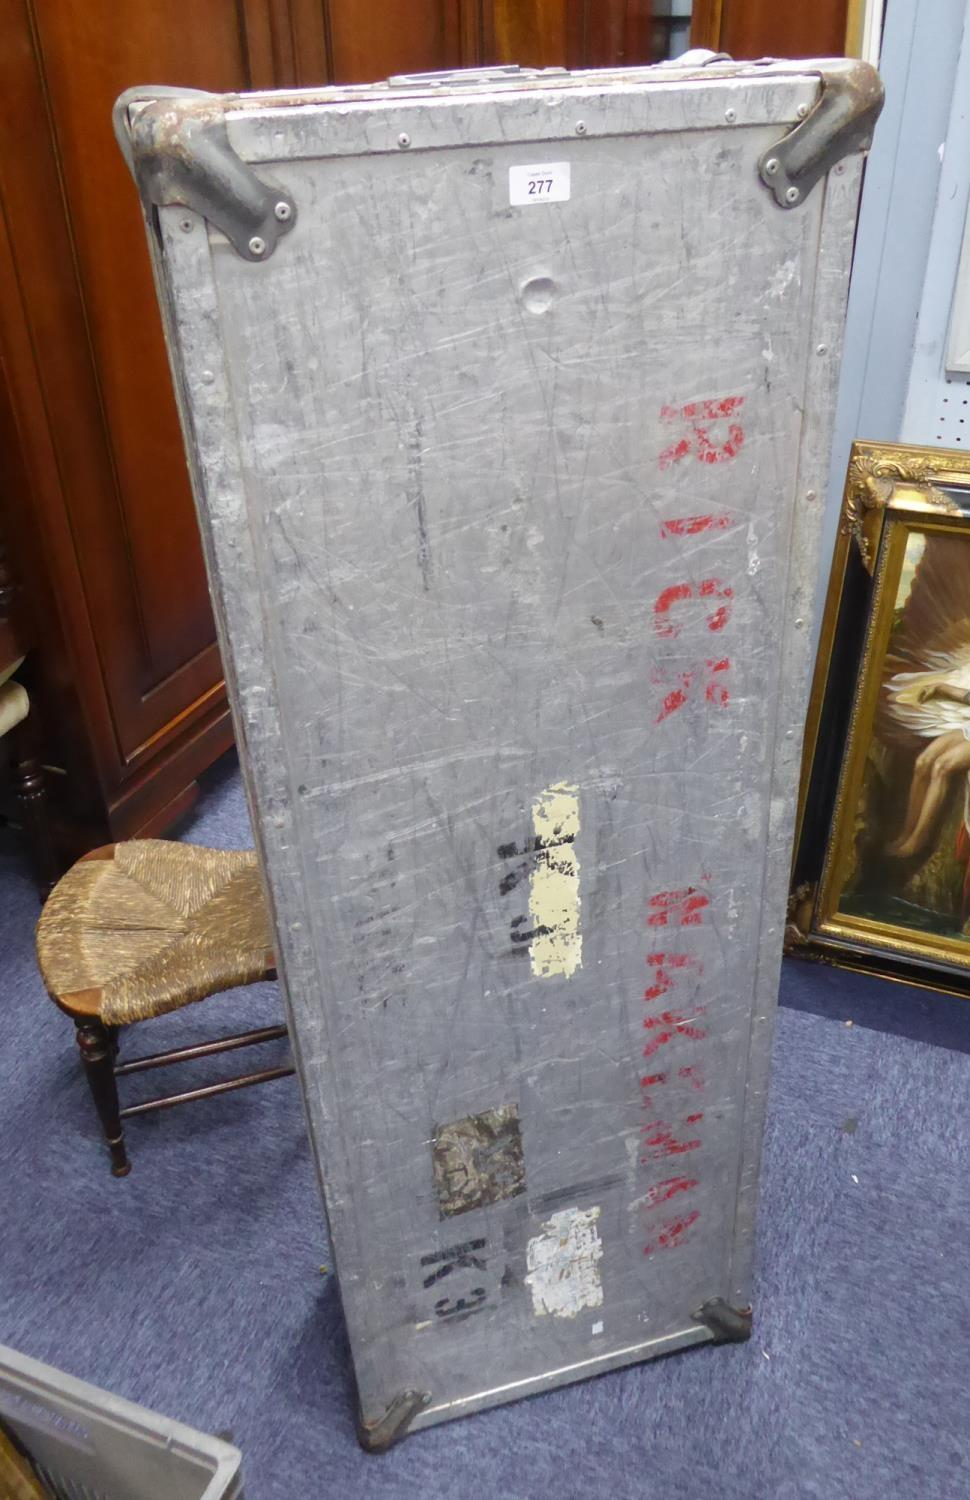 Lot 277 - 'RICK WAKEMAN', ALUMINIUM INSTRUMENT FLIGHT CASE, the artist's name stencilled in red to the